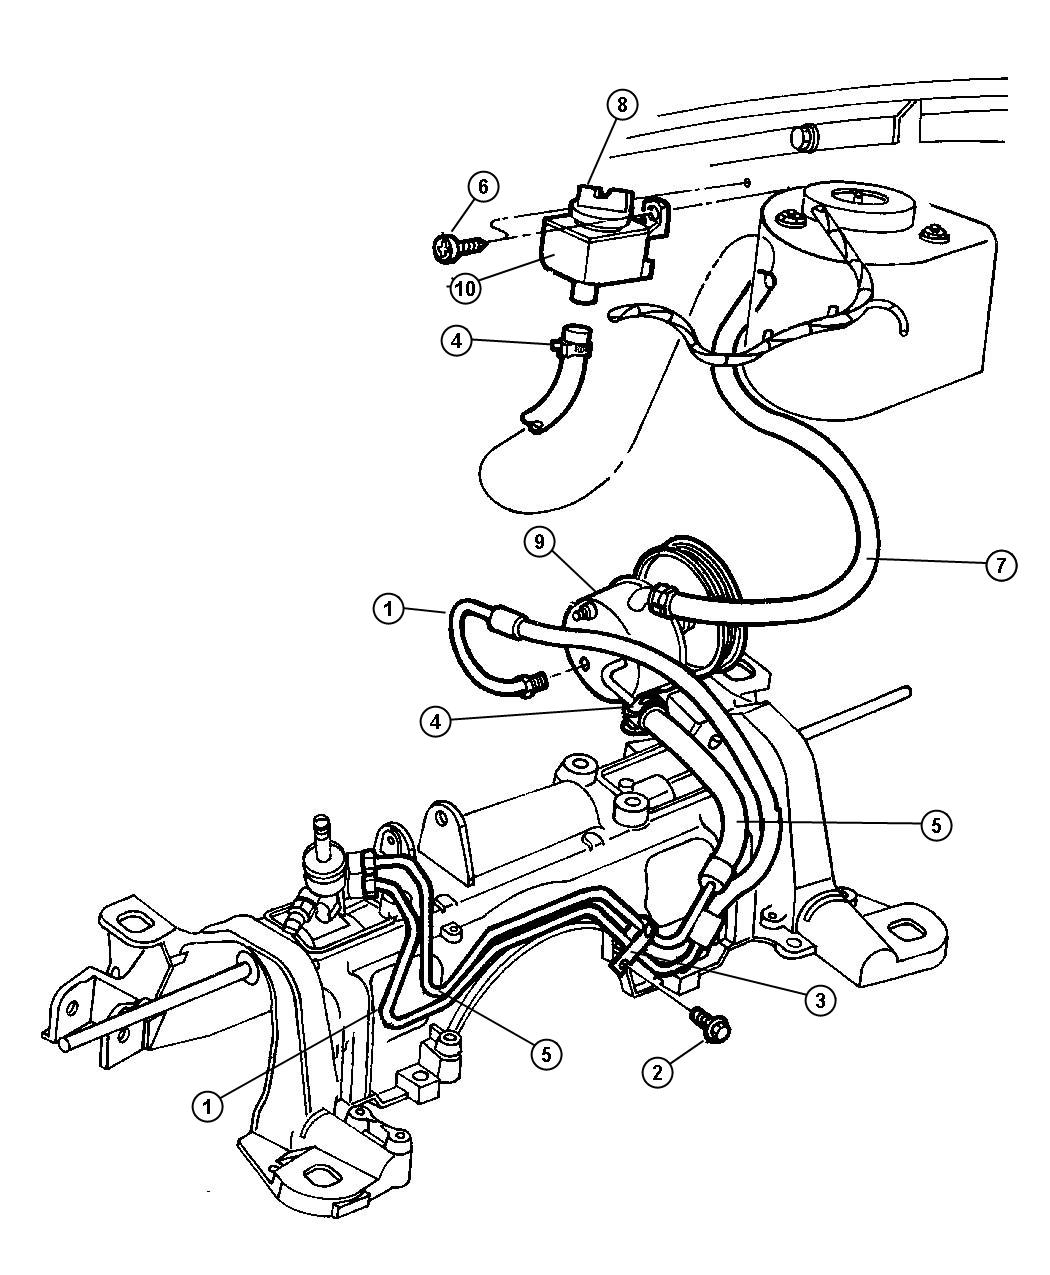 Service manual [1999 Plymouth Grand Voyager Power Steering